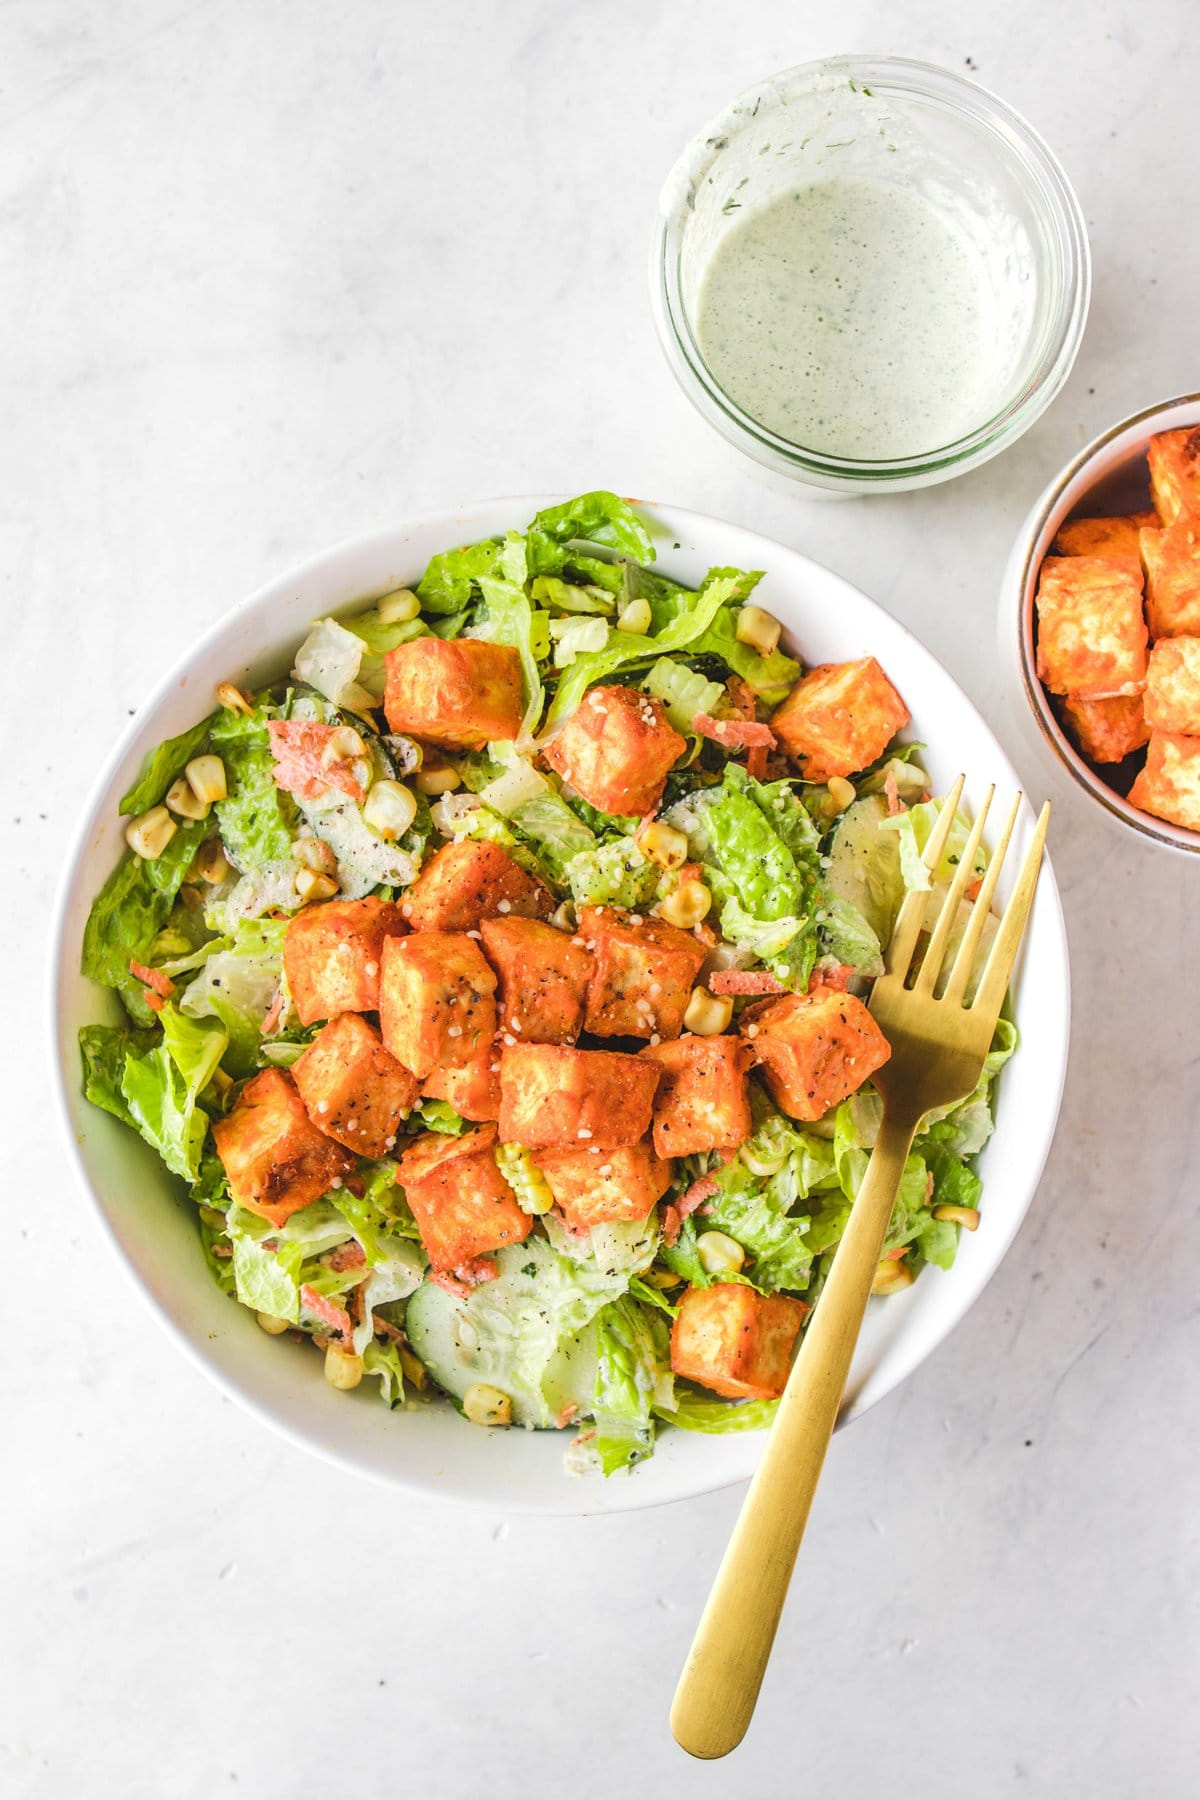 how to cook tofu for salad